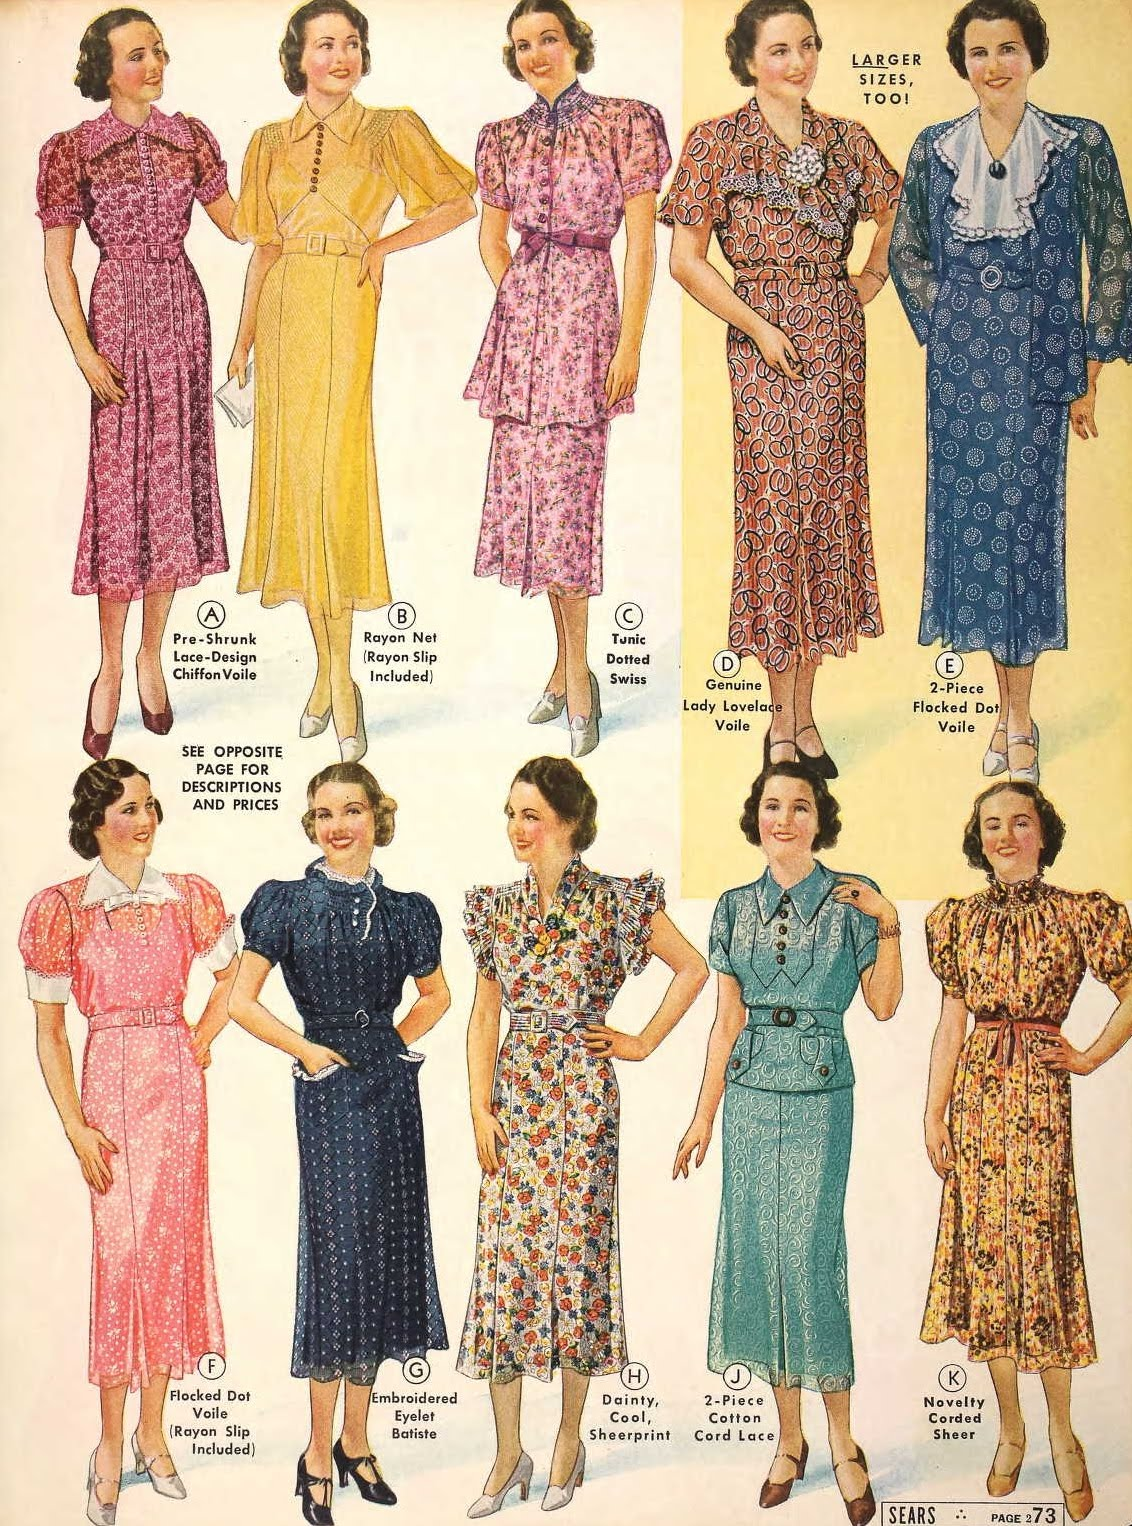 Snapped Garters: 1937 Fashions